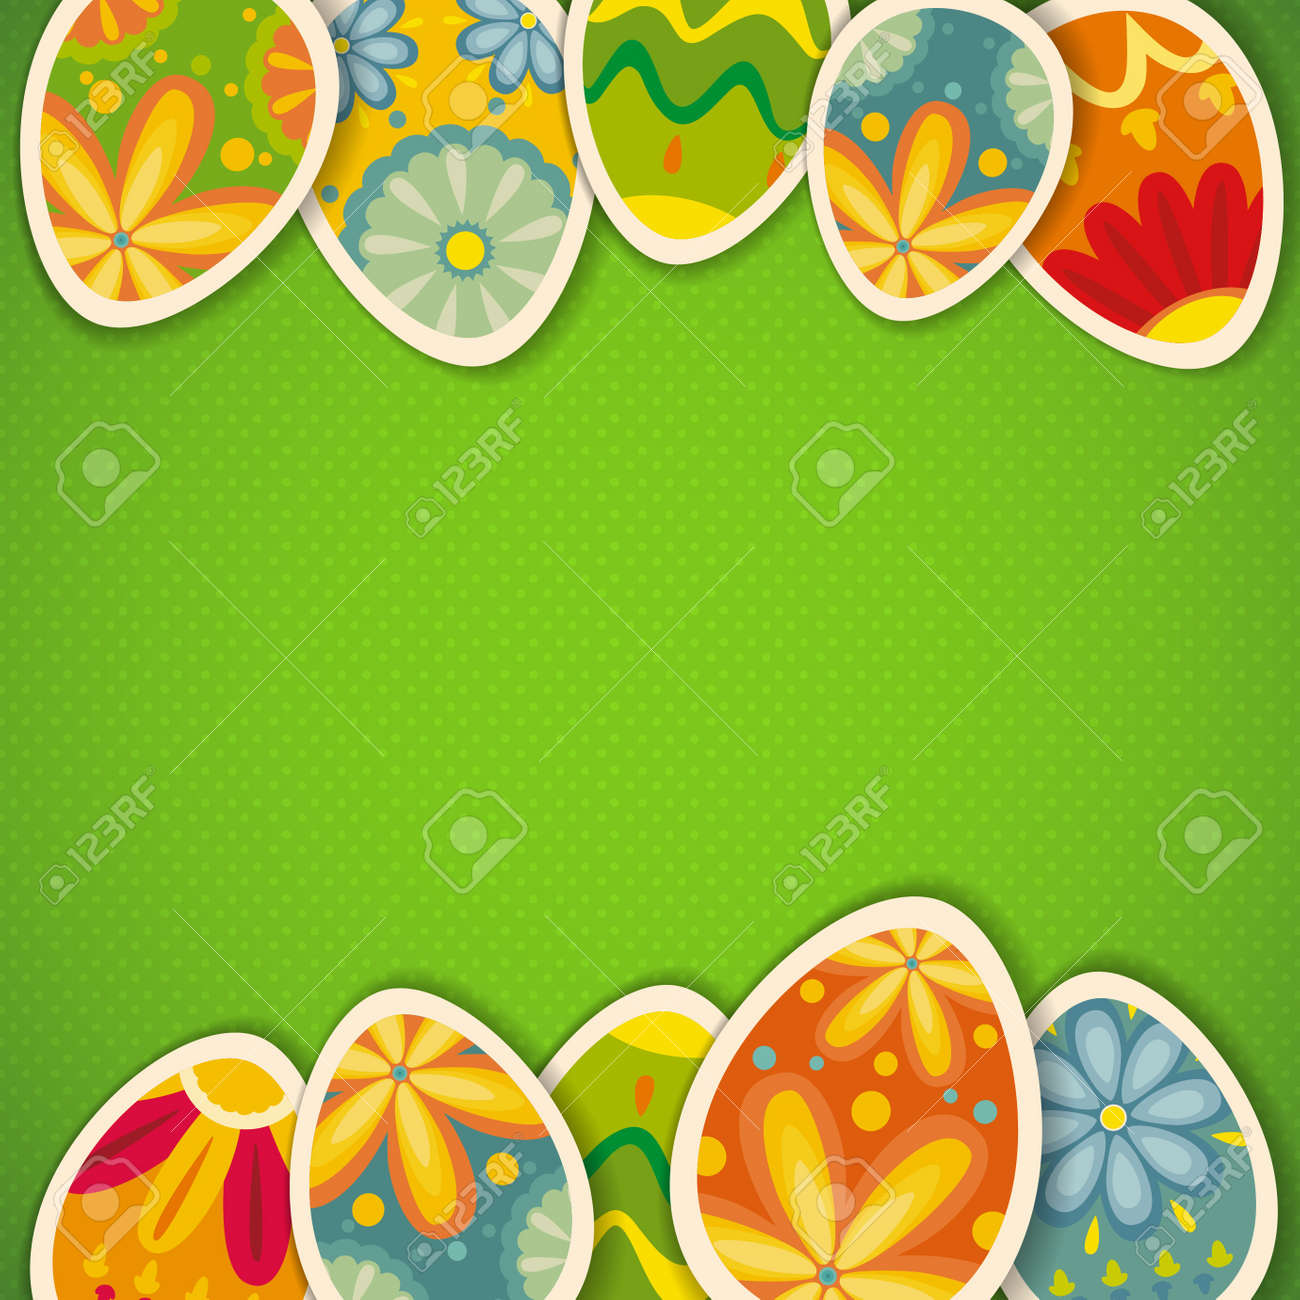 Happy Easter card template, colored eggs and polka dot pattern - 17993759